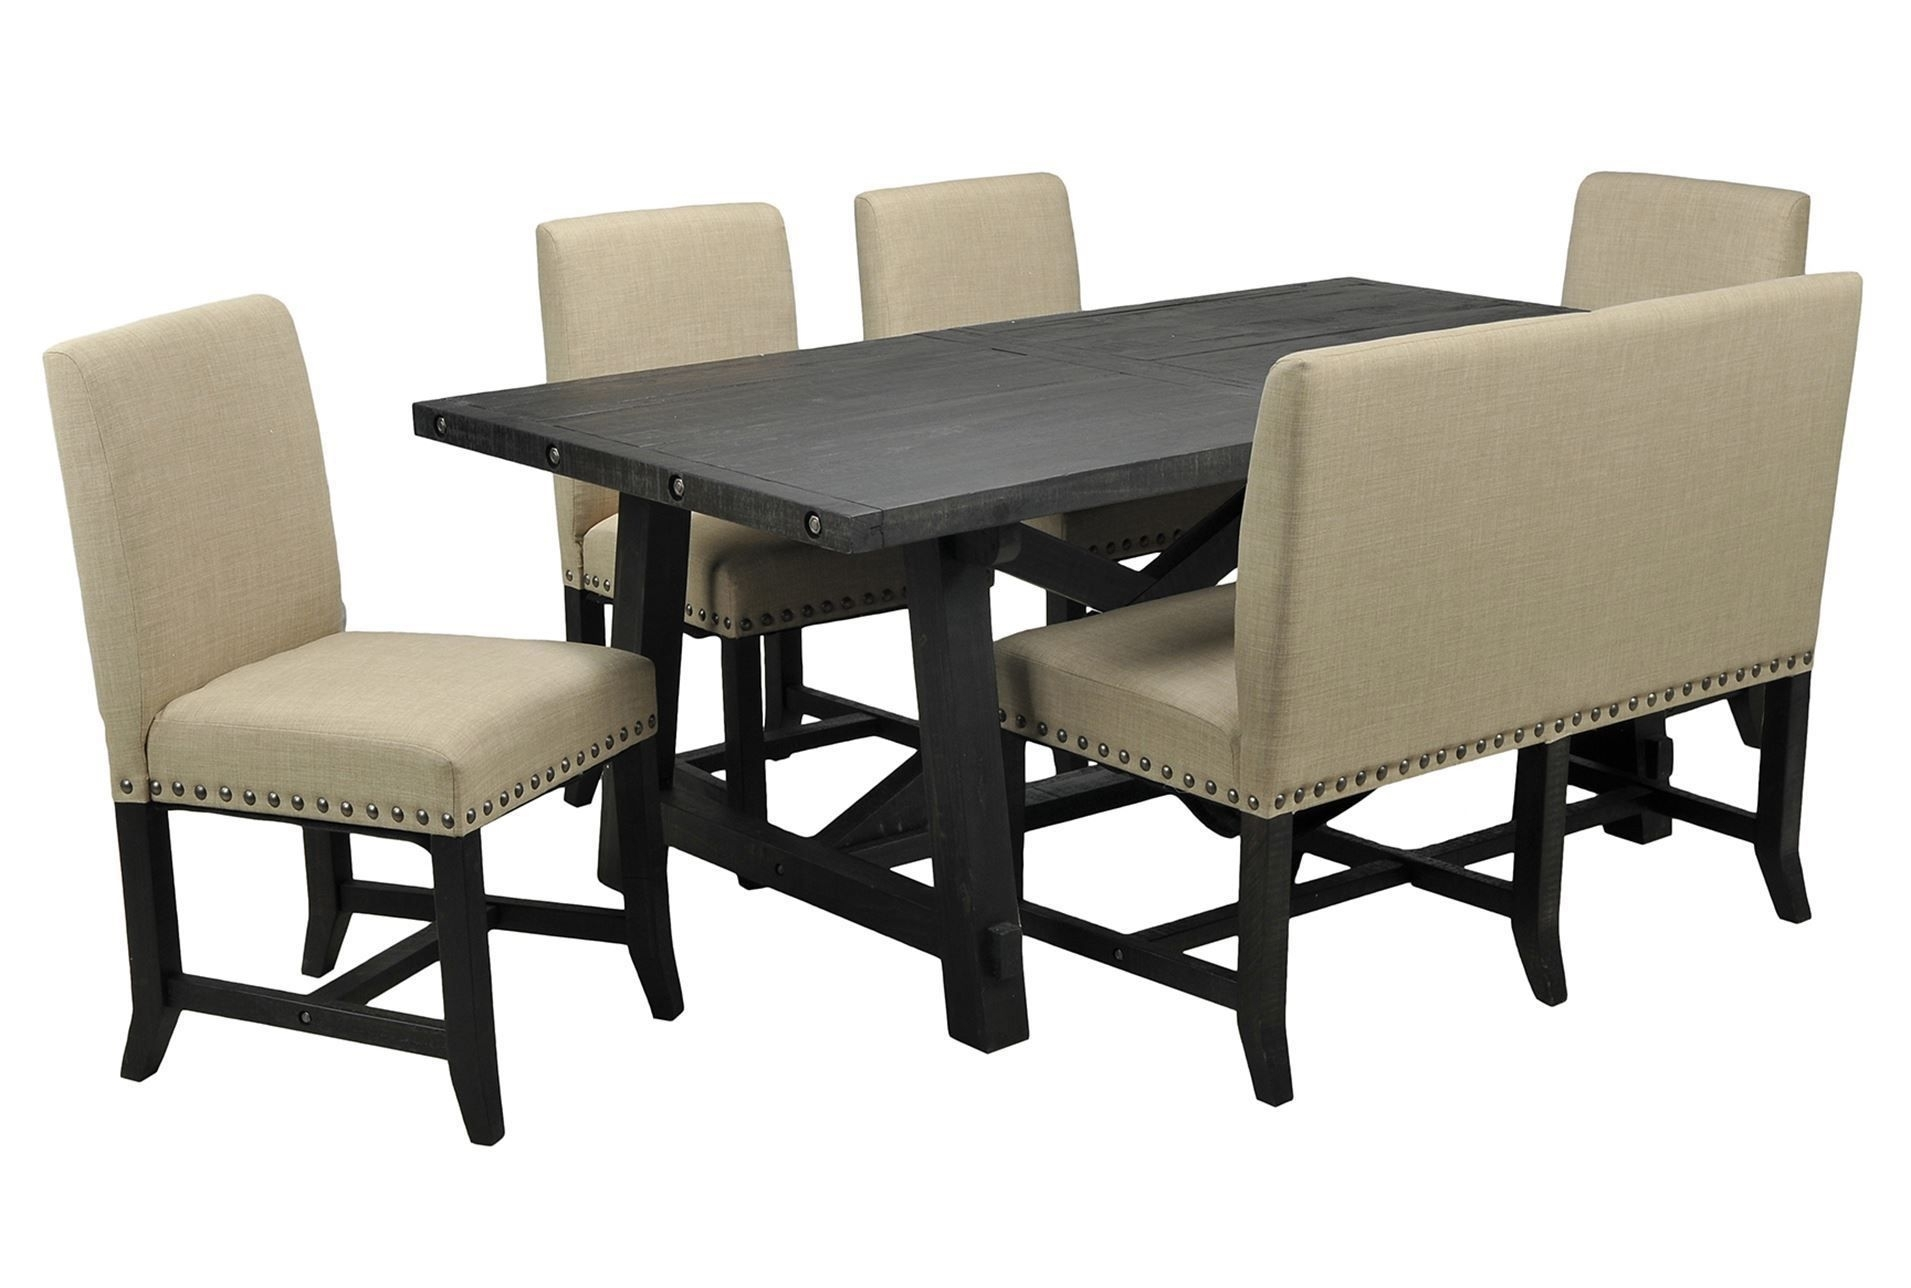 Jaxon 6 Piece Rectangle Dining Set W/bench & Uph Chairs | Home Decor Within Best And Newest Jaxon 6 Piece Rectangle Dining Sets With Bench & Uph Chairs (Image 9 of 20)